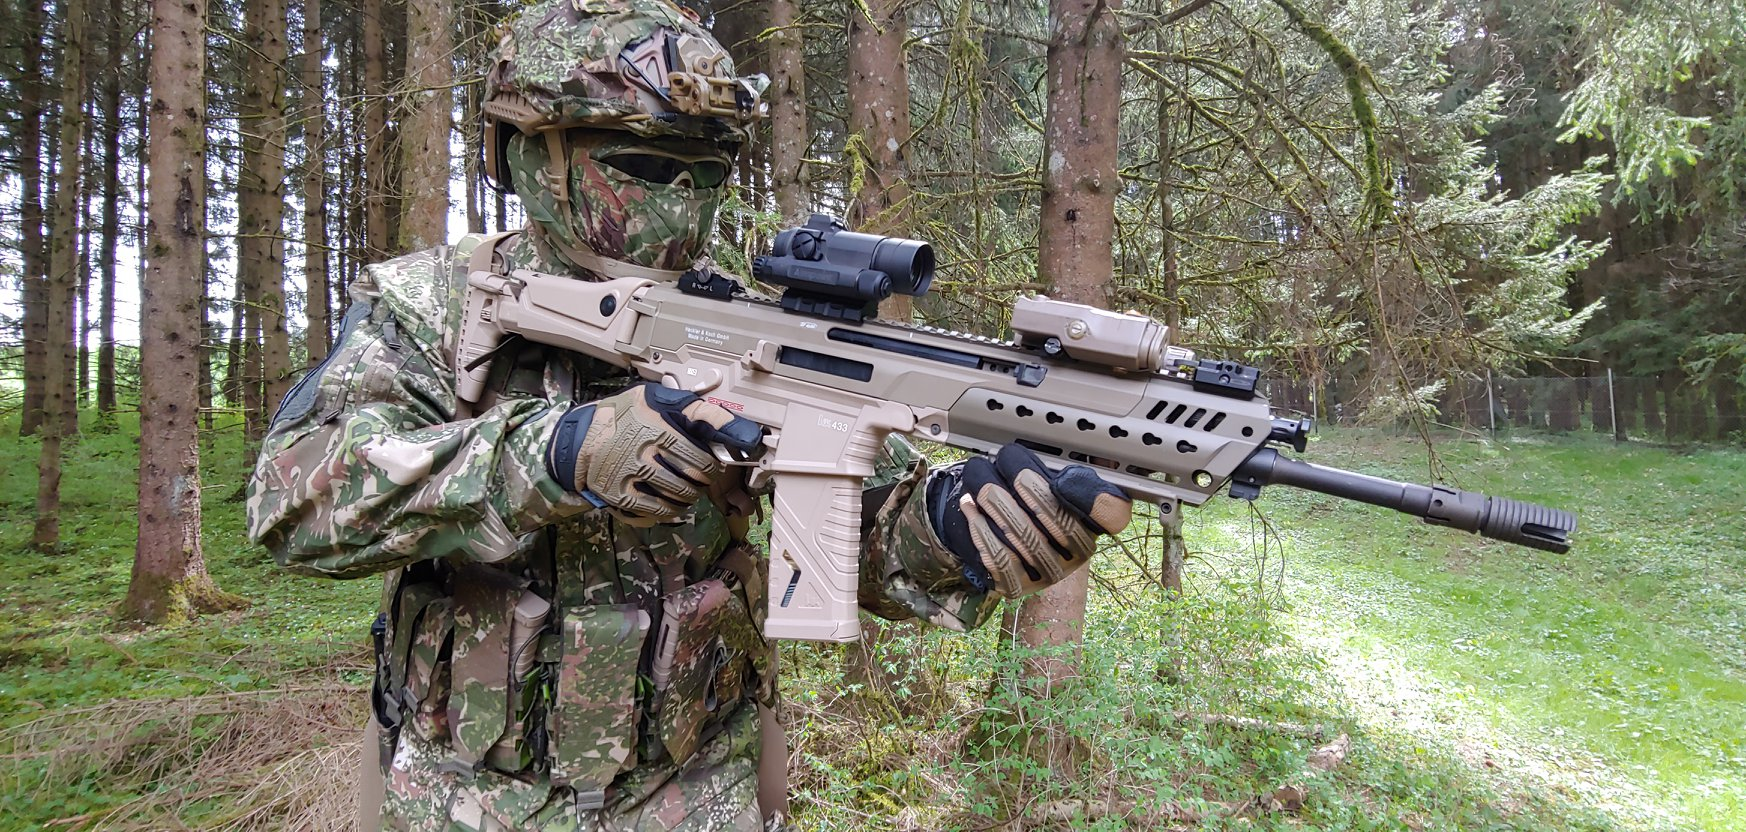 HK433 - The new assault rifle from HK-71153477_1534403273368849_1849496613685297152_o.jpg